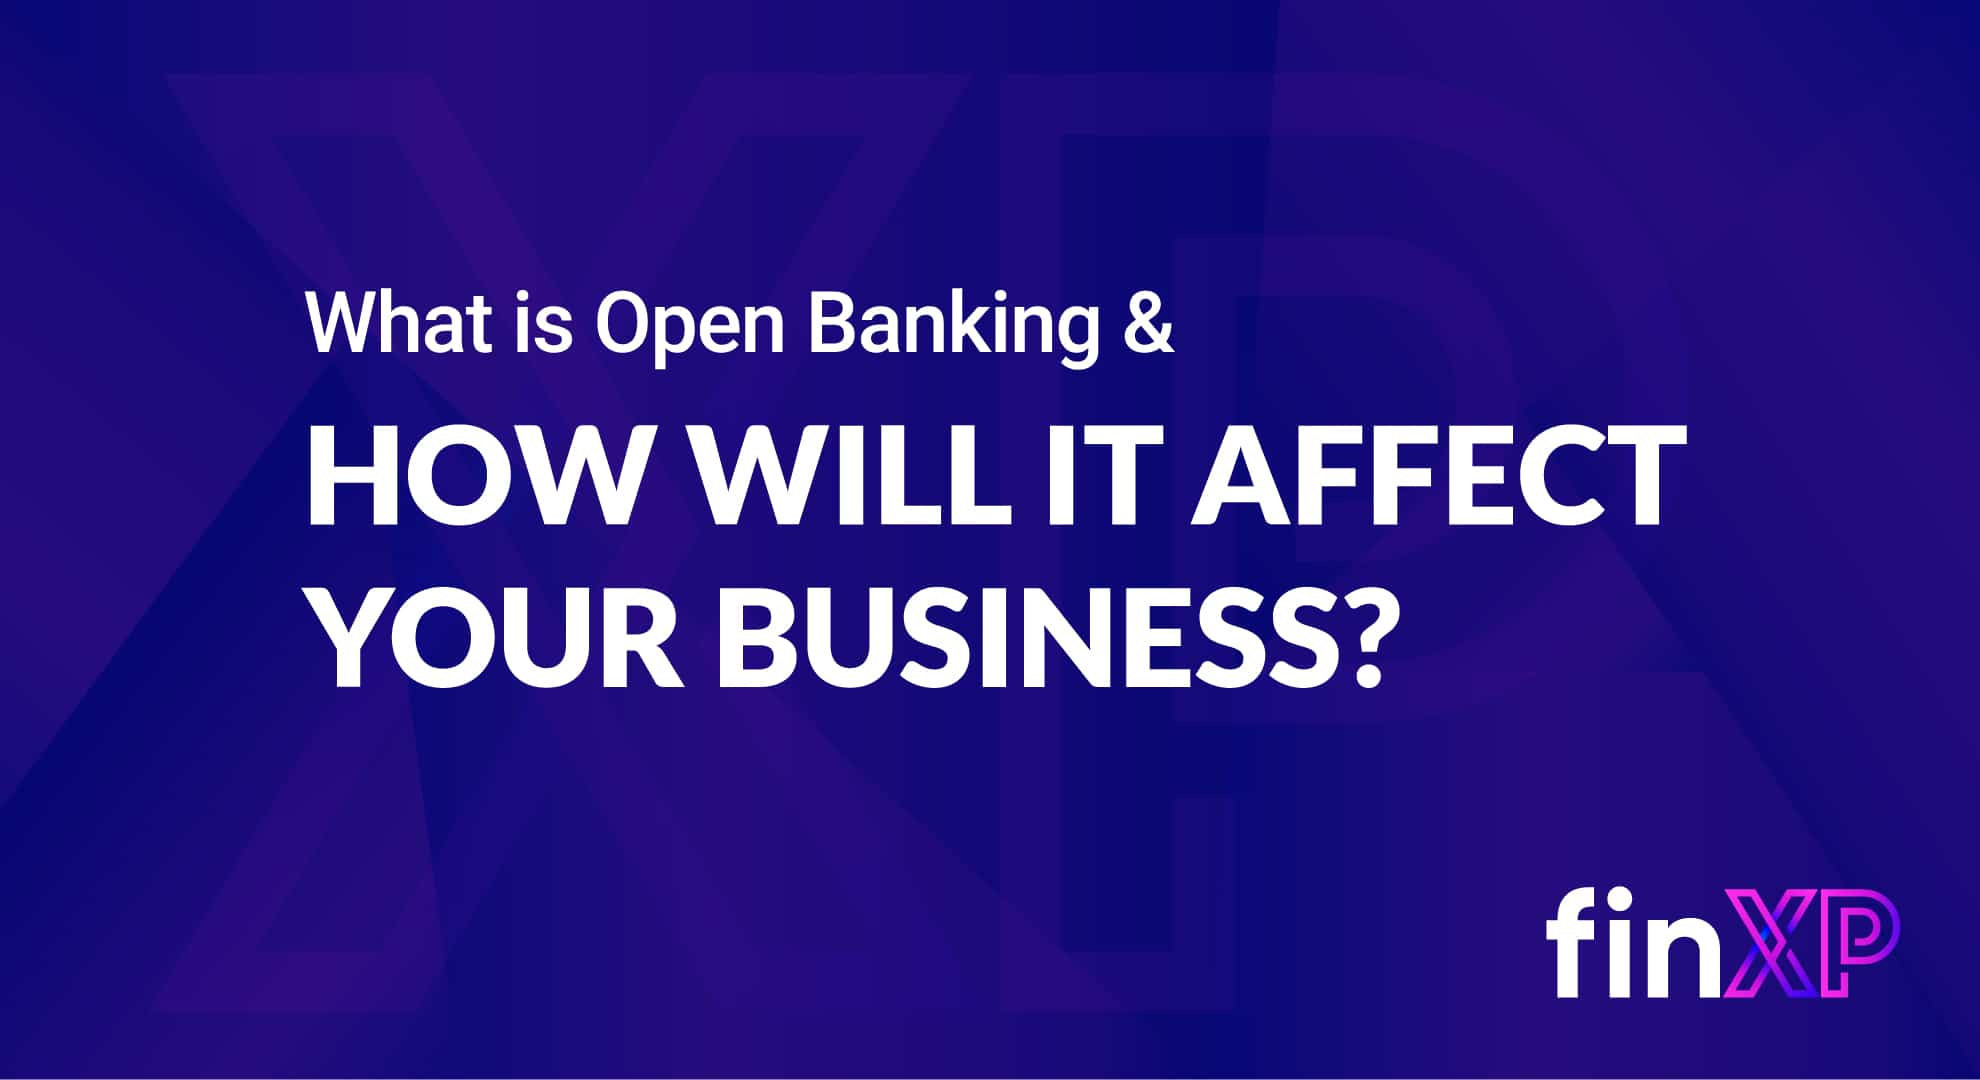 What is Open Banking? image